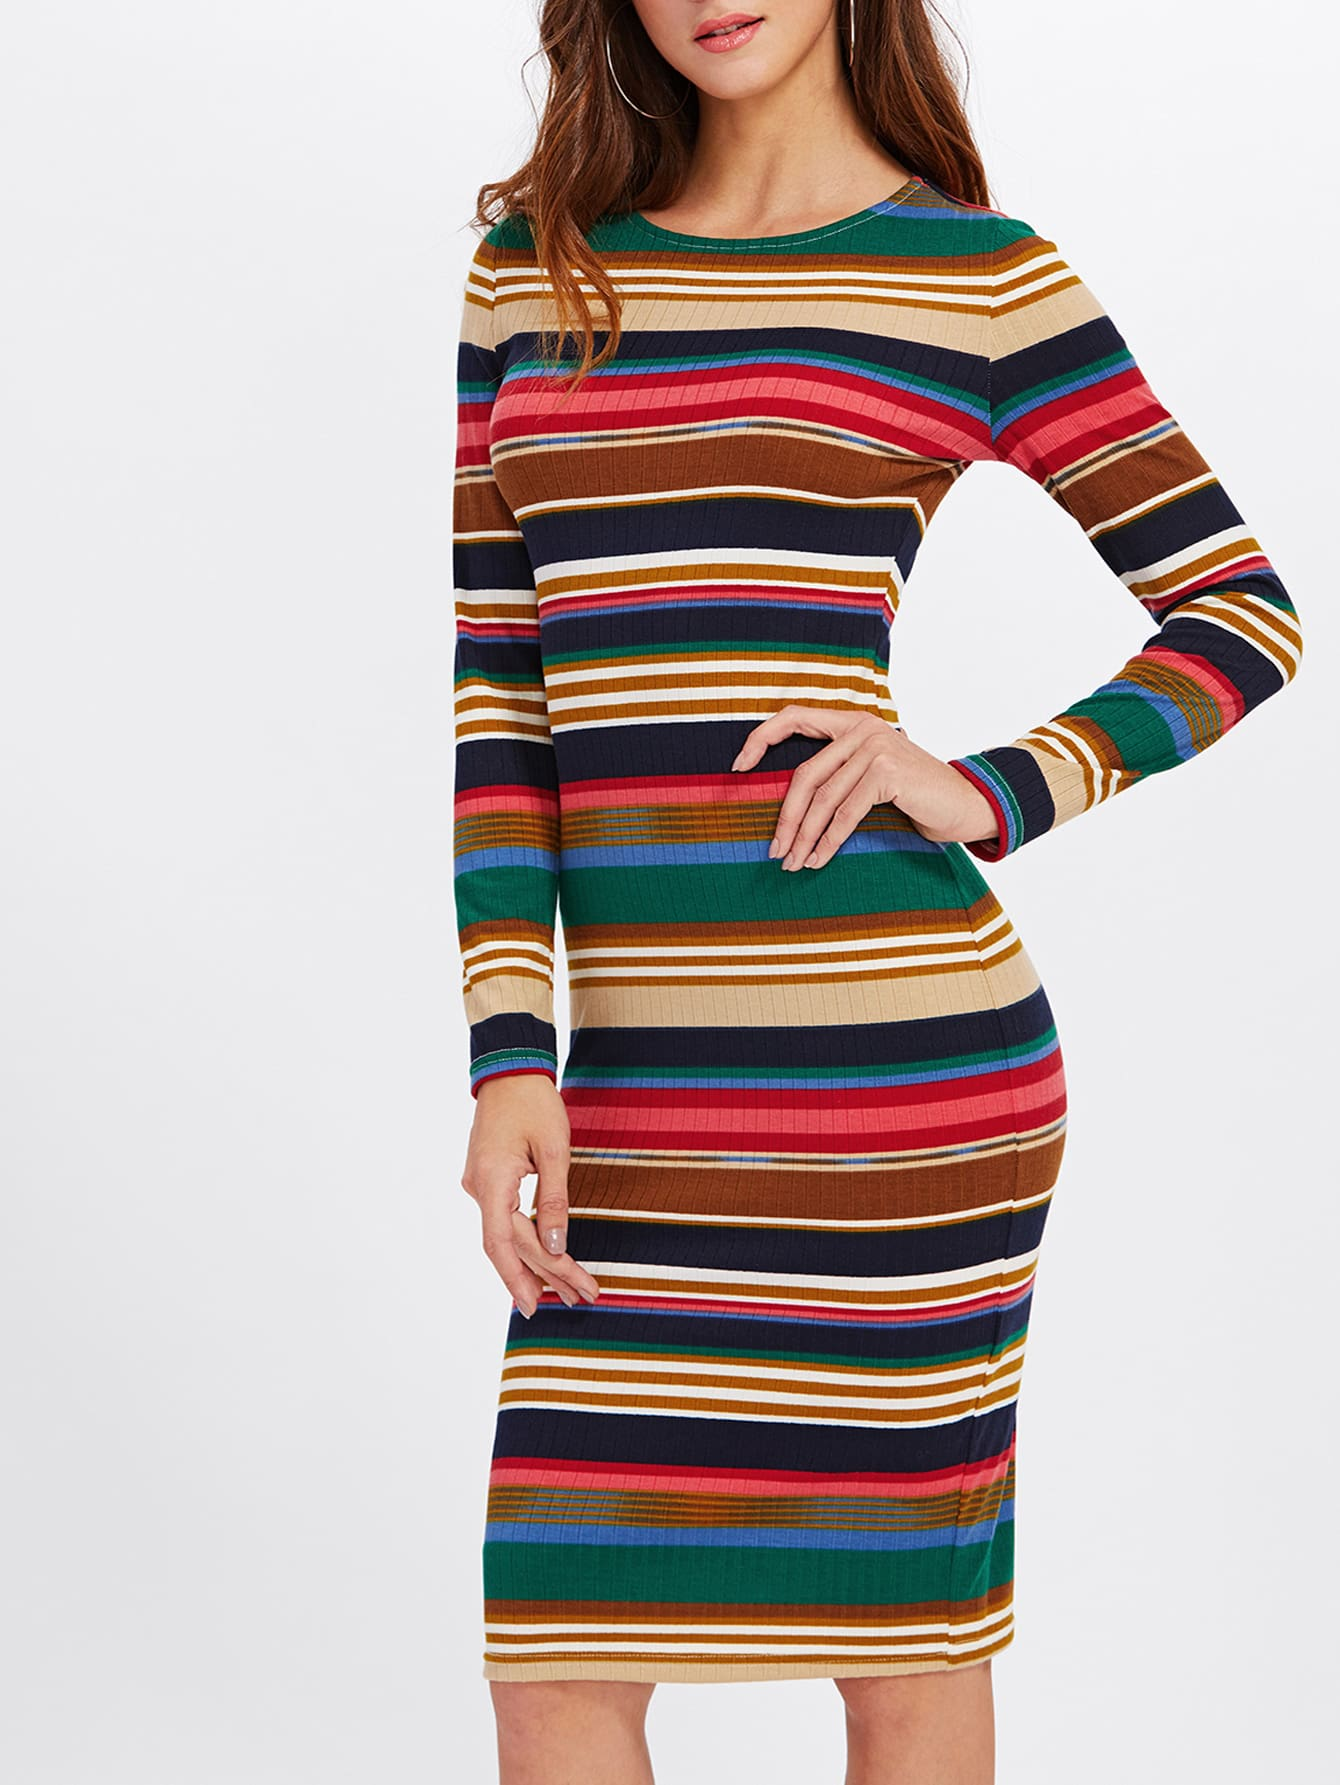 Rib Knit Colorful Striped Pencil Dress dress171016703